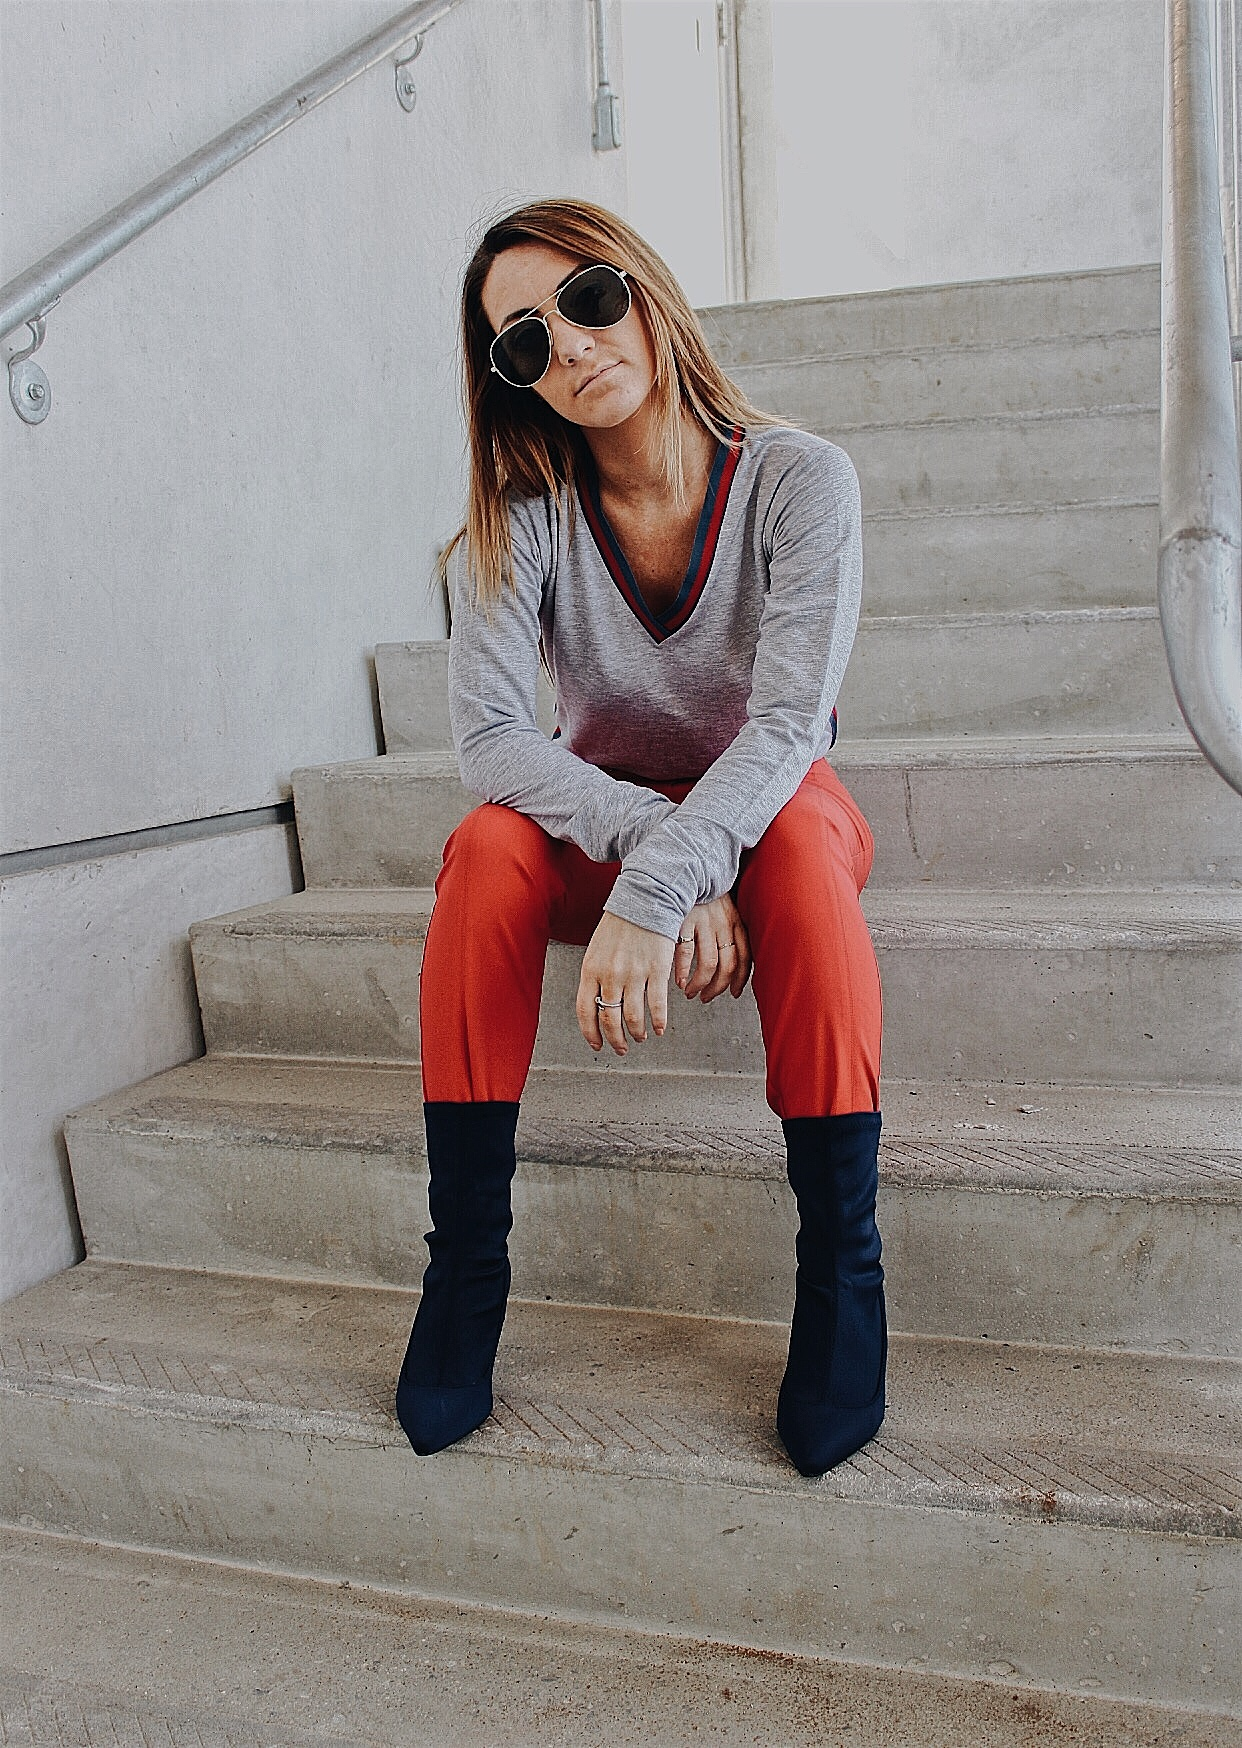 Red Alert  - The color red has dominated the fashion industry this fall!